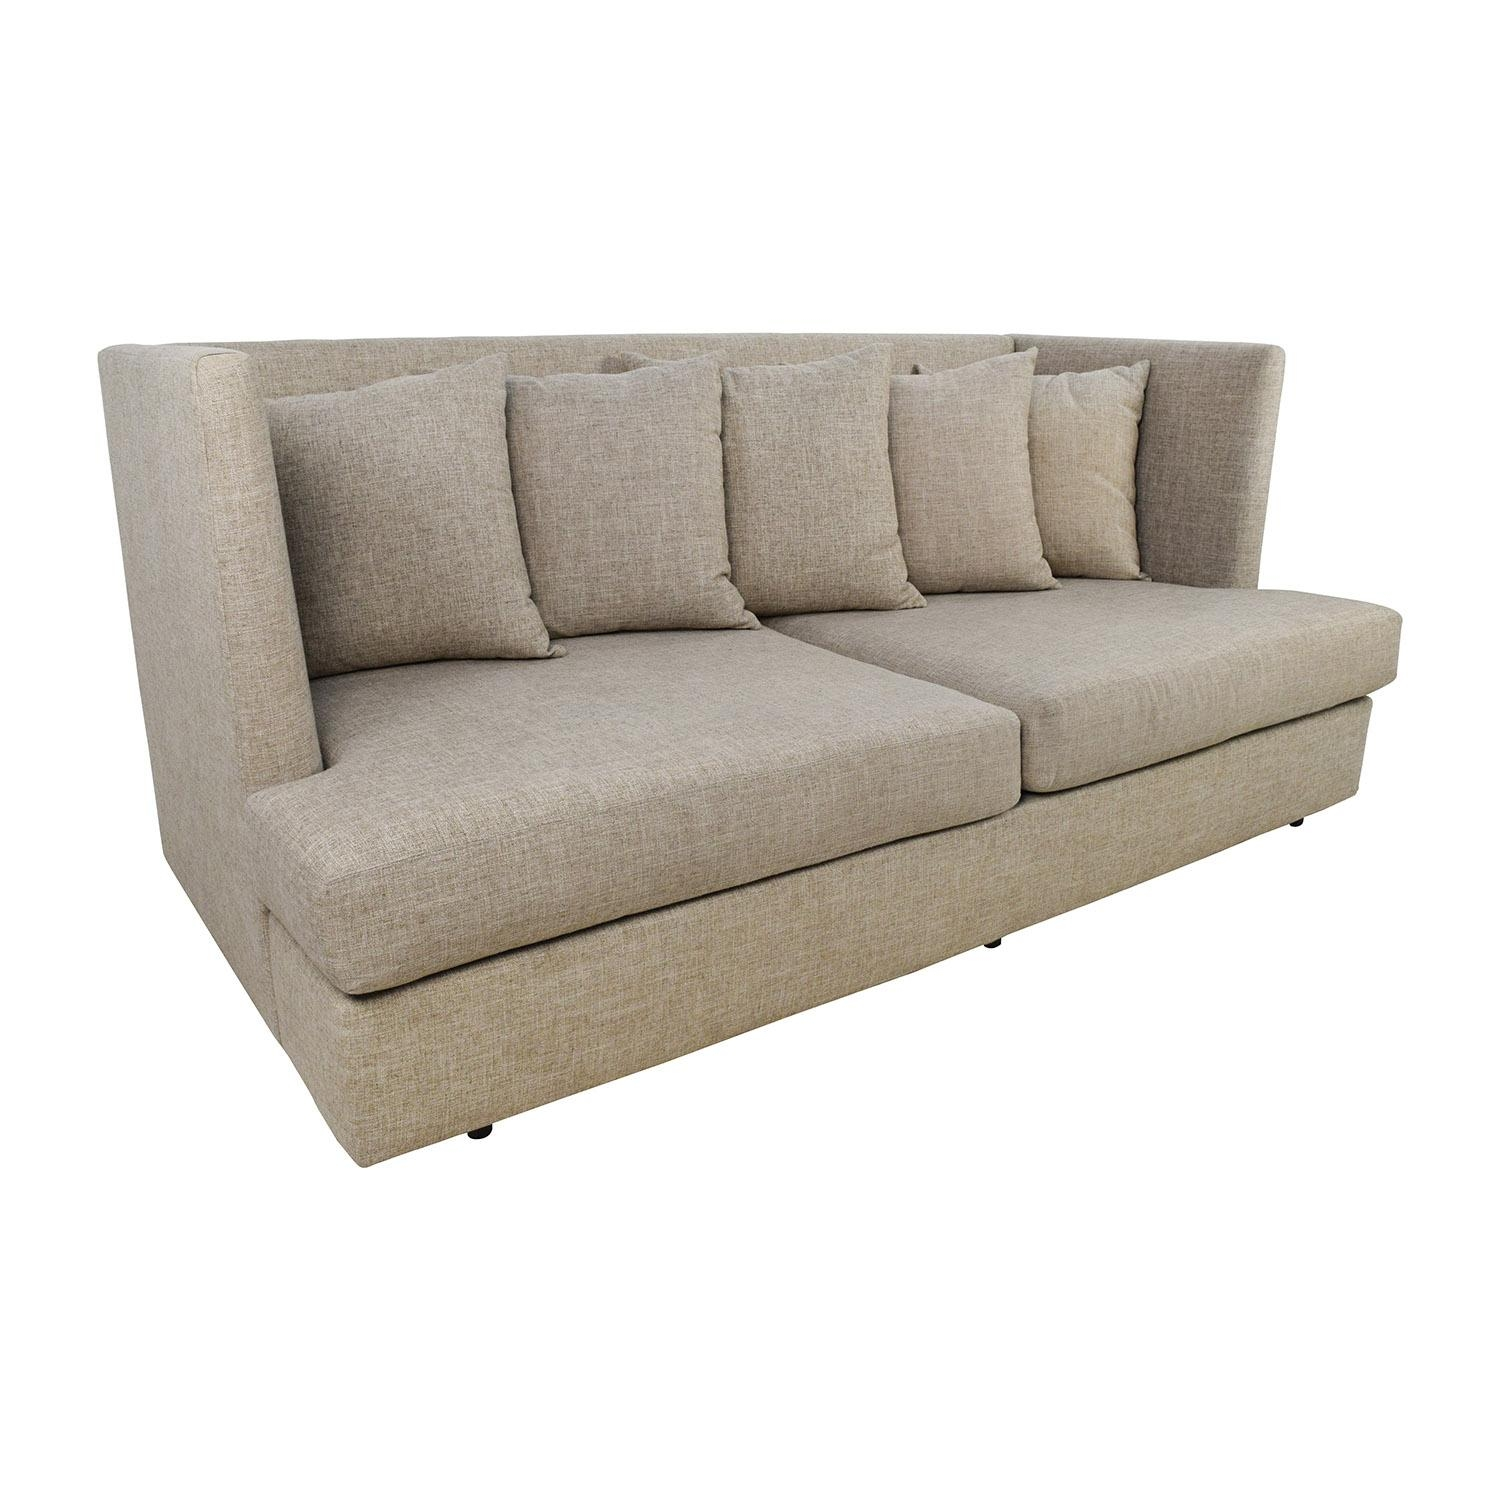 crate and barrel sofa sleeper review two sided chaise 20 collection of sofas ideas